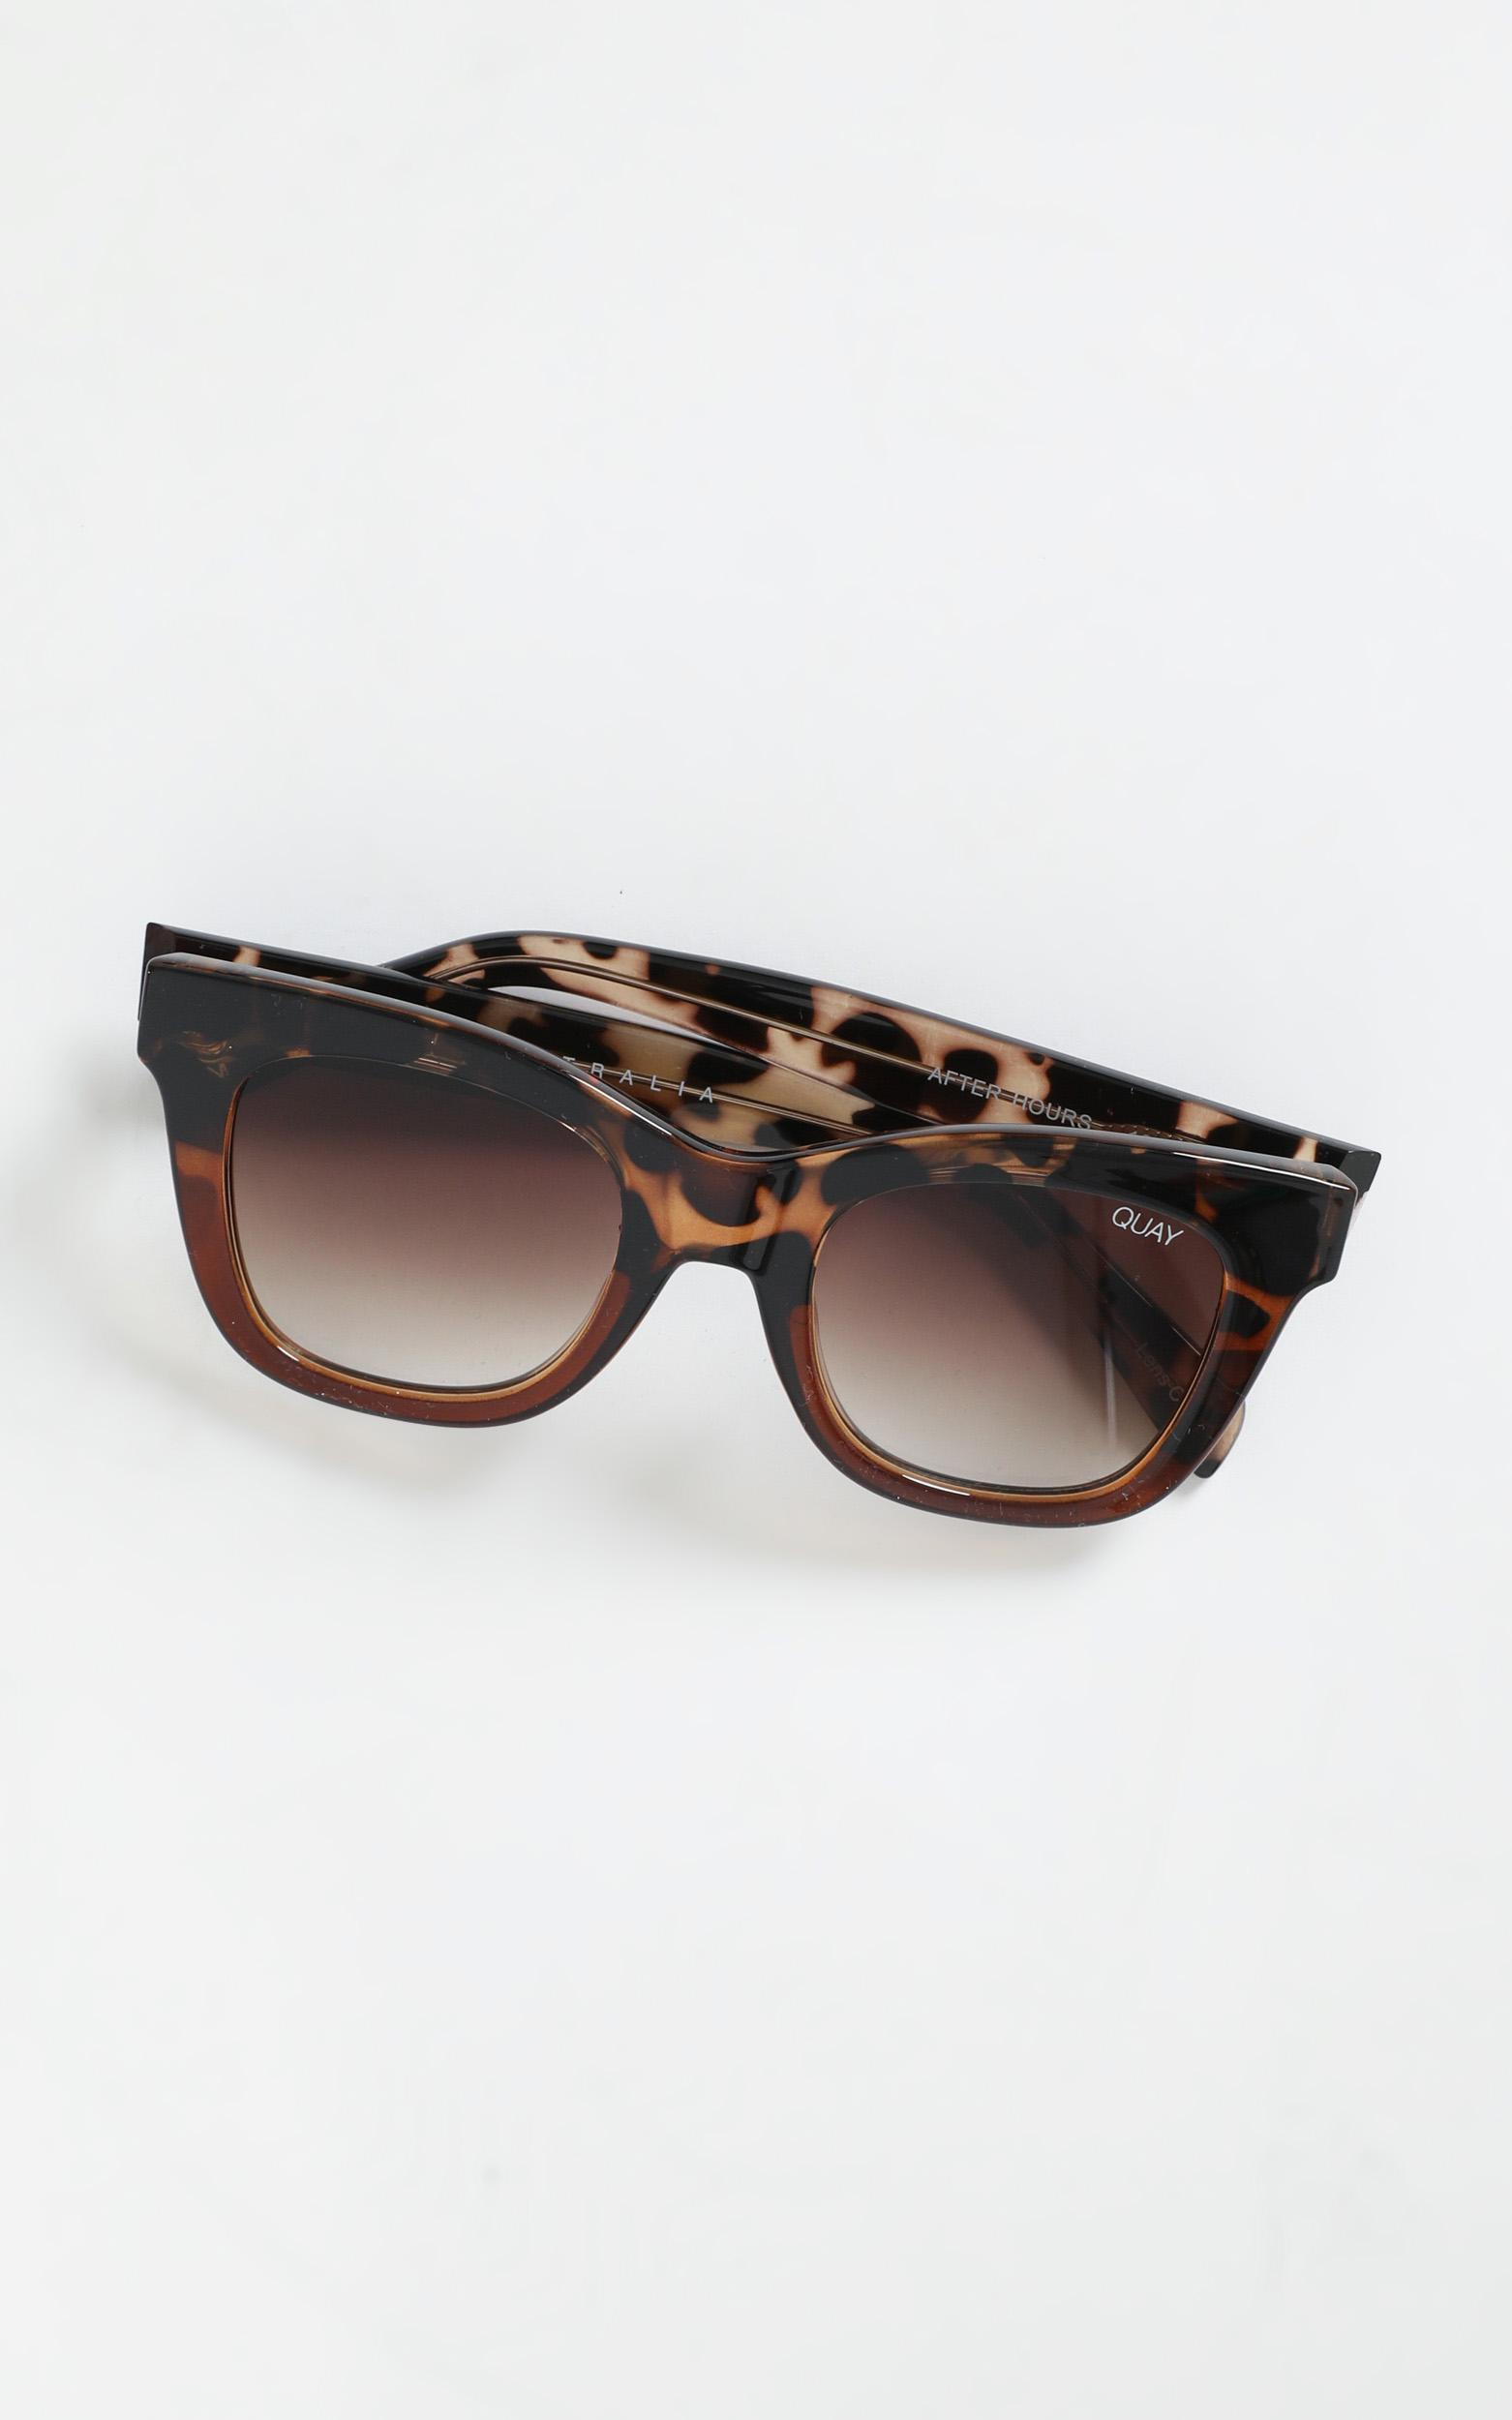 Quay - After Hours Sunglasses In Tort And Brown Lens, Brown, hi-res image number null